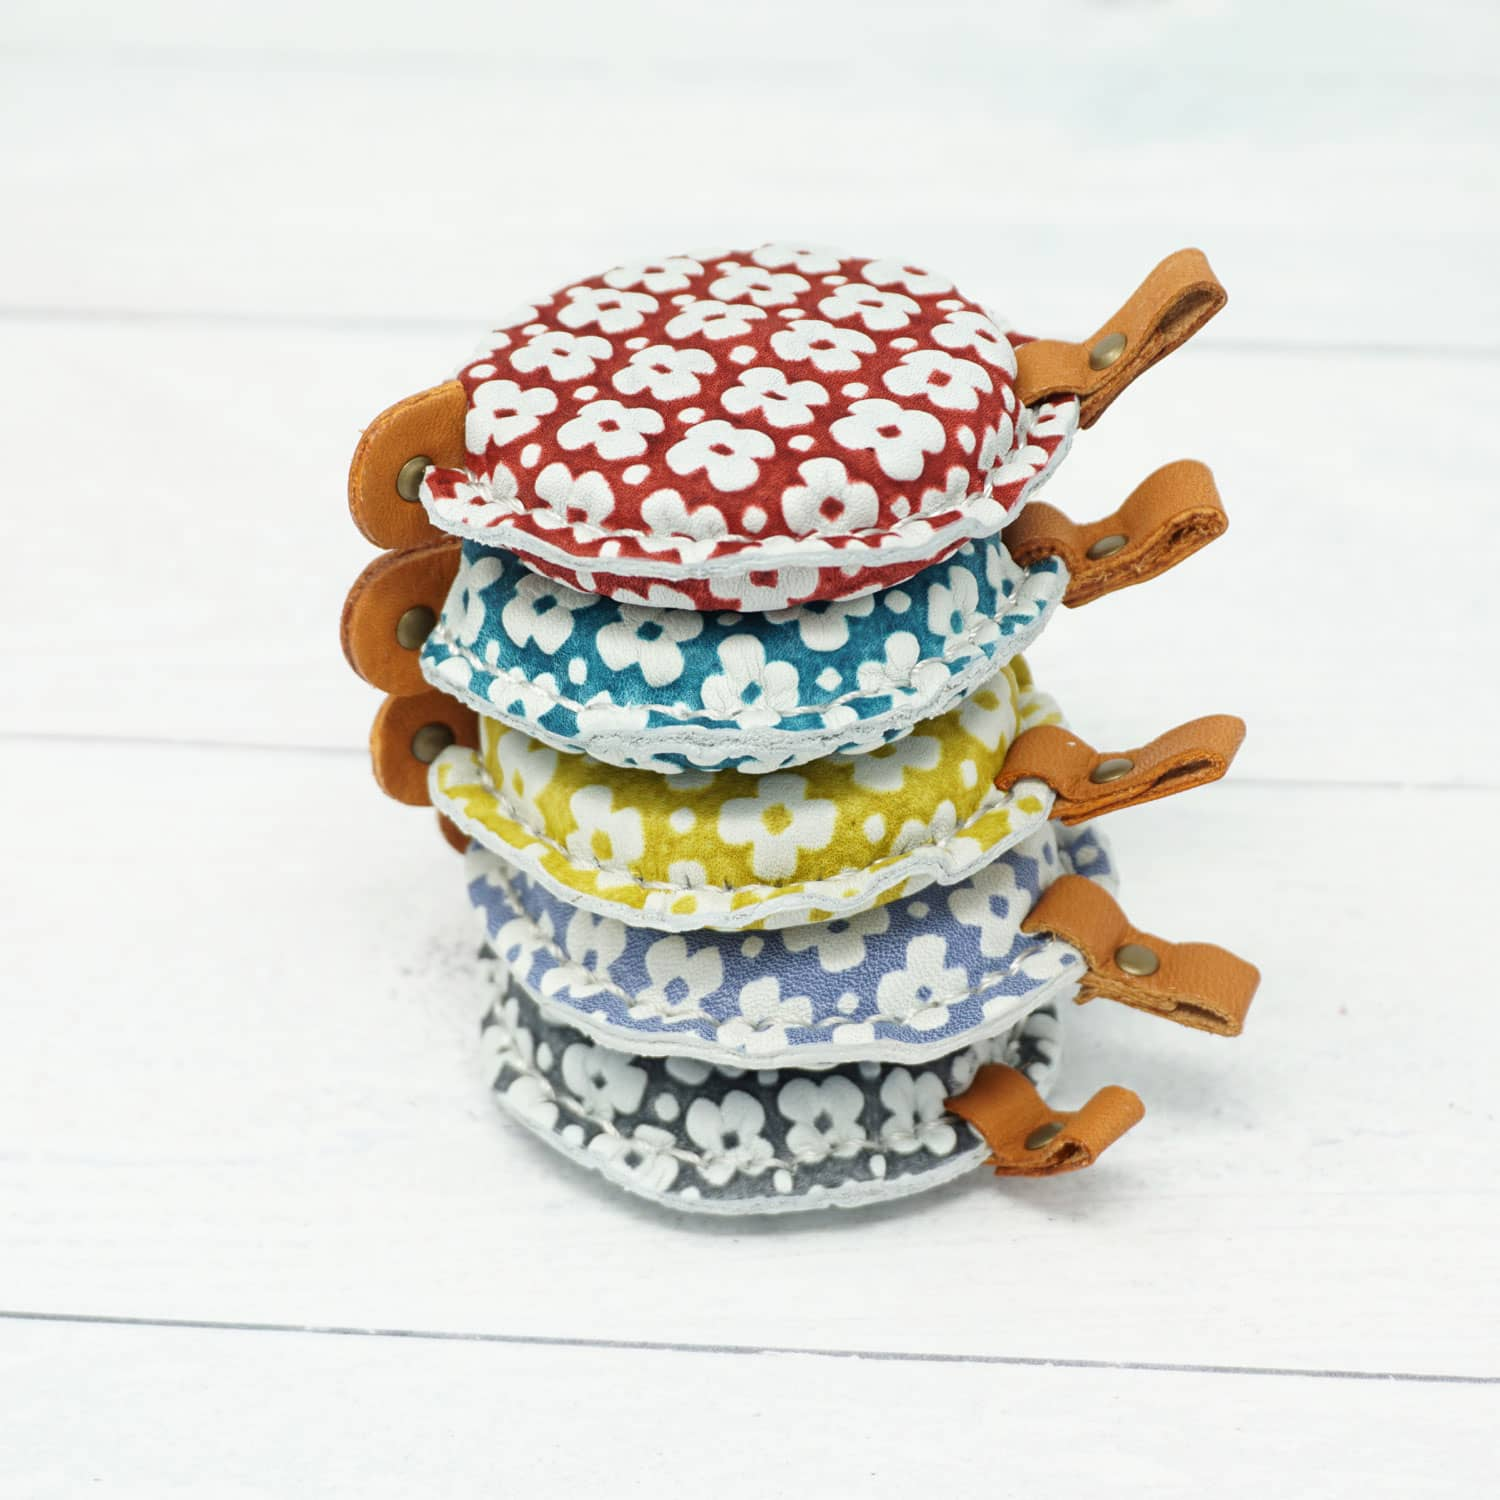 Cohana Yuzen Leather Tape Measure shown in a stack - red, green, yellow, blue, grey | Yarn Worx